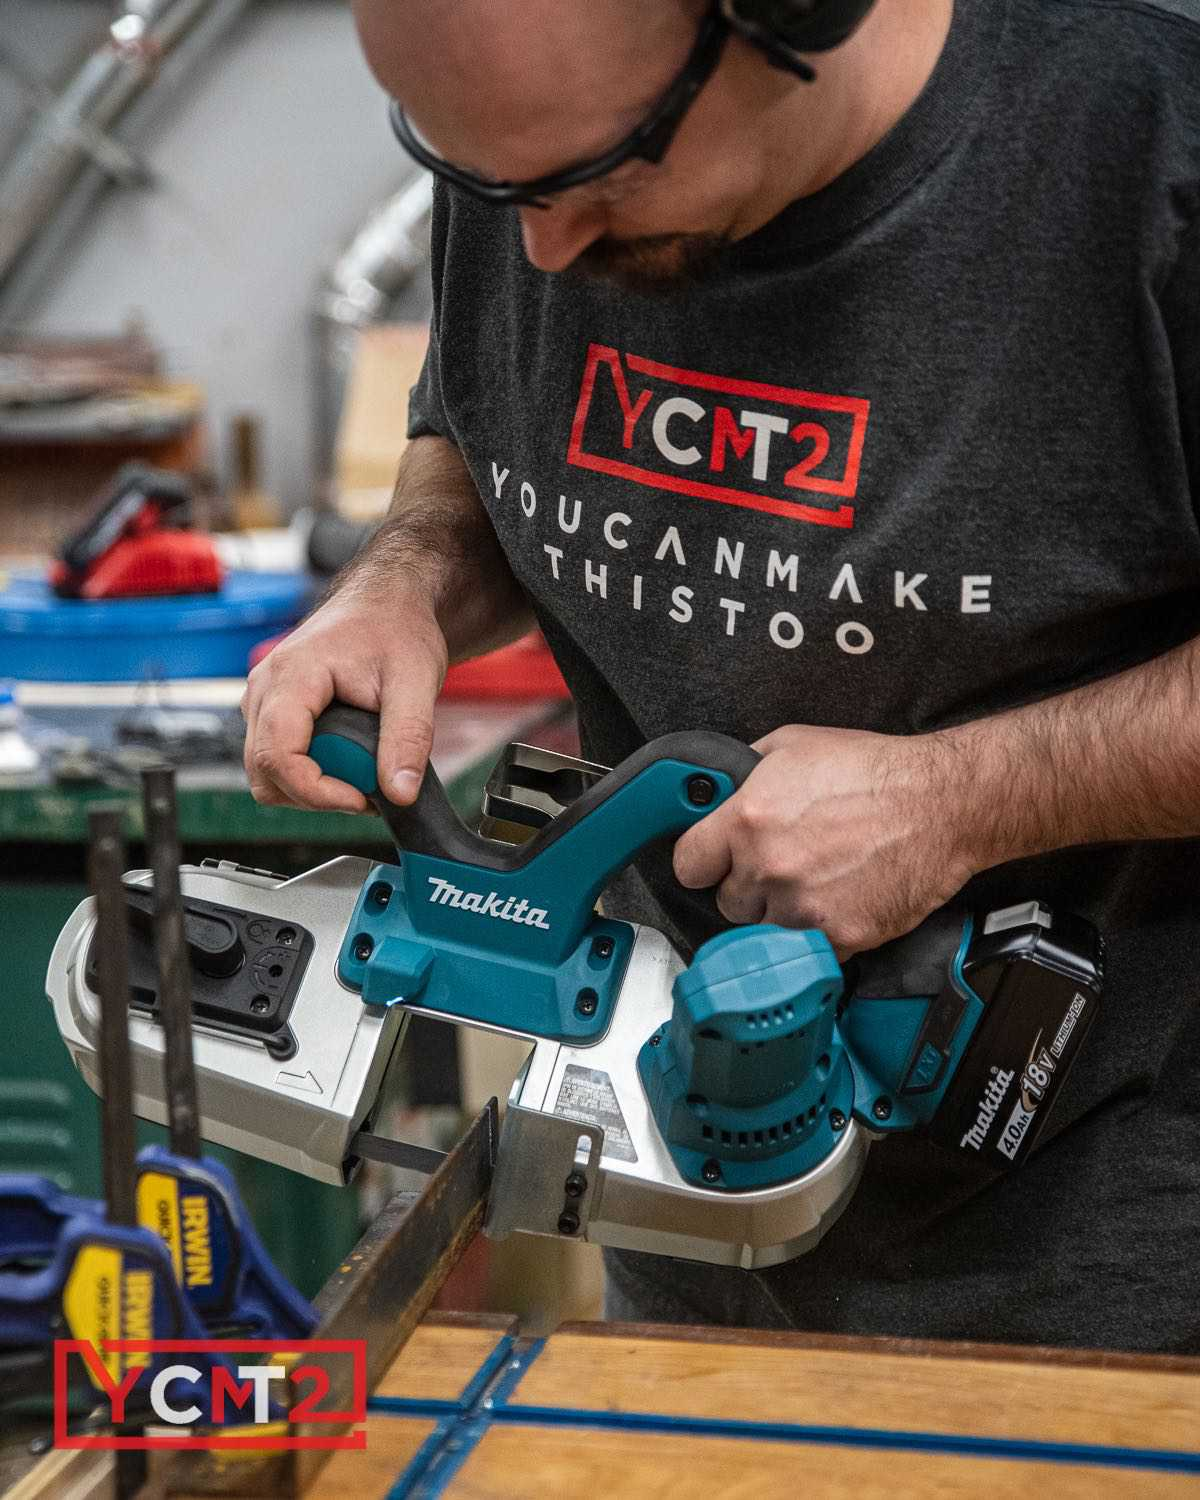 Makita Compact Portable Bandsaw Review